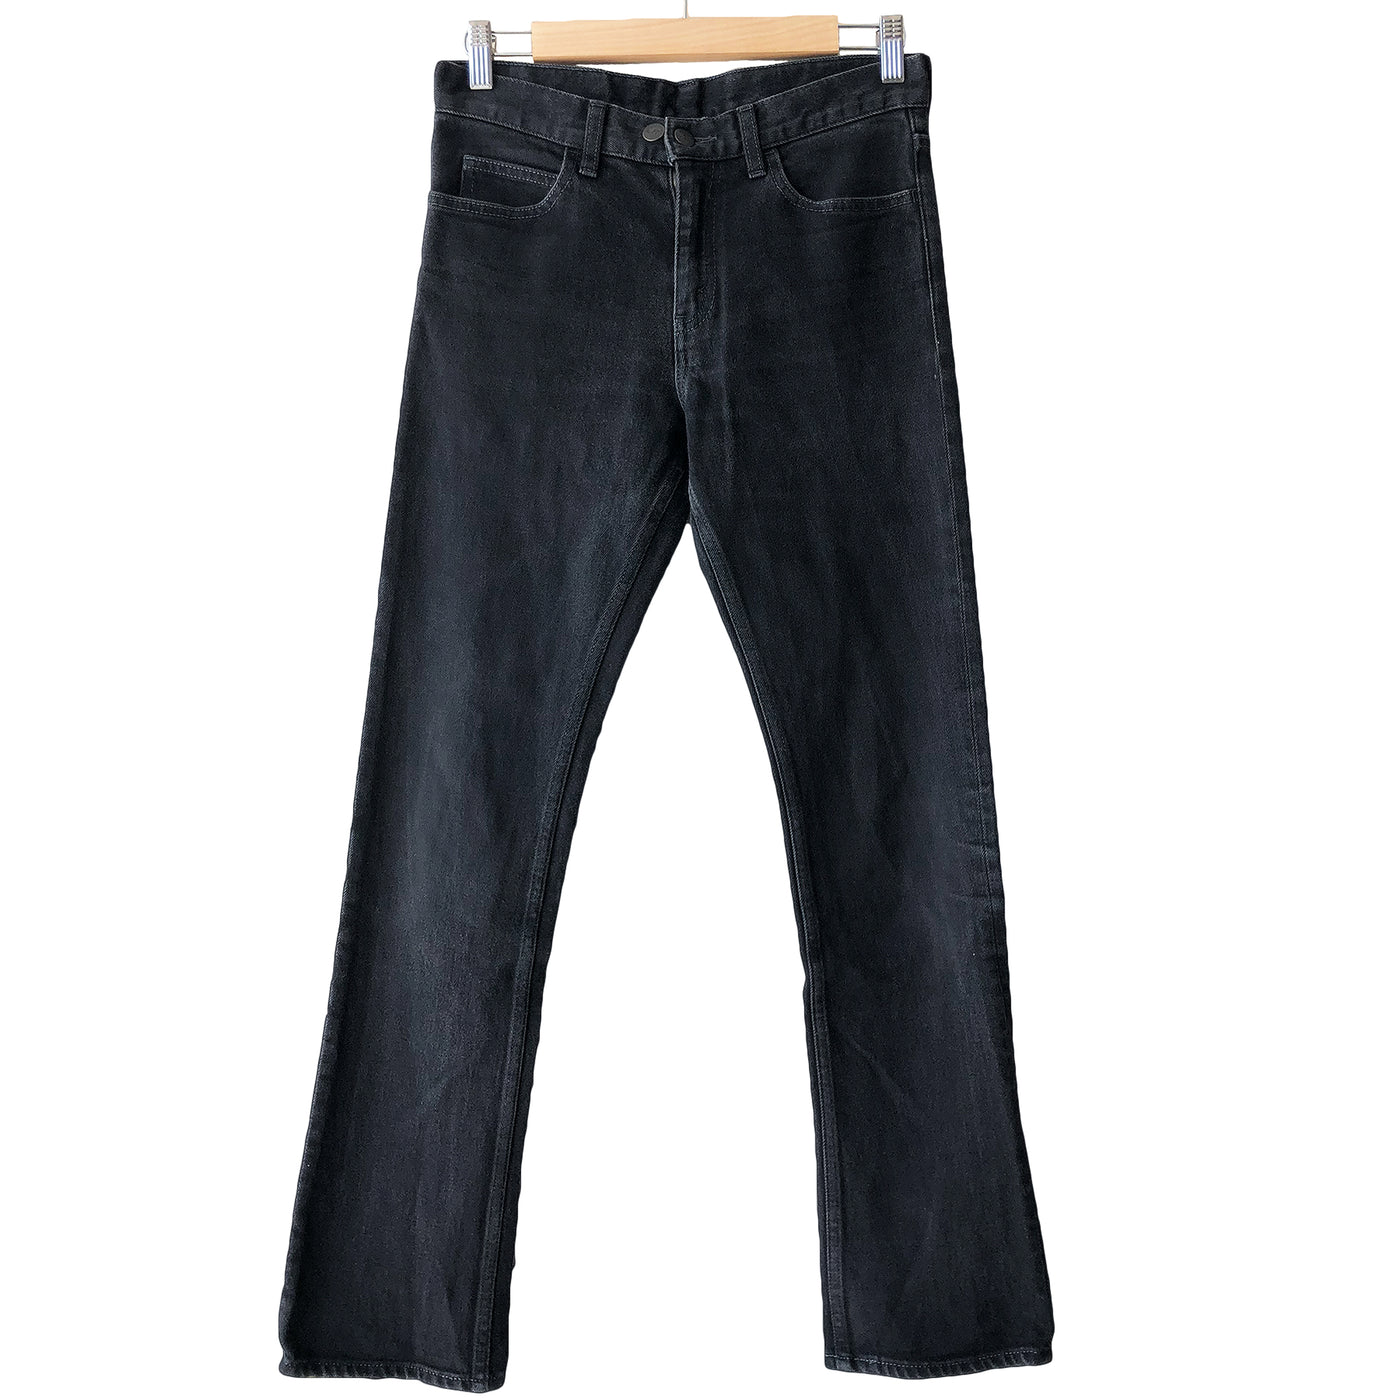 N. Hoolywood Black Wash Denim